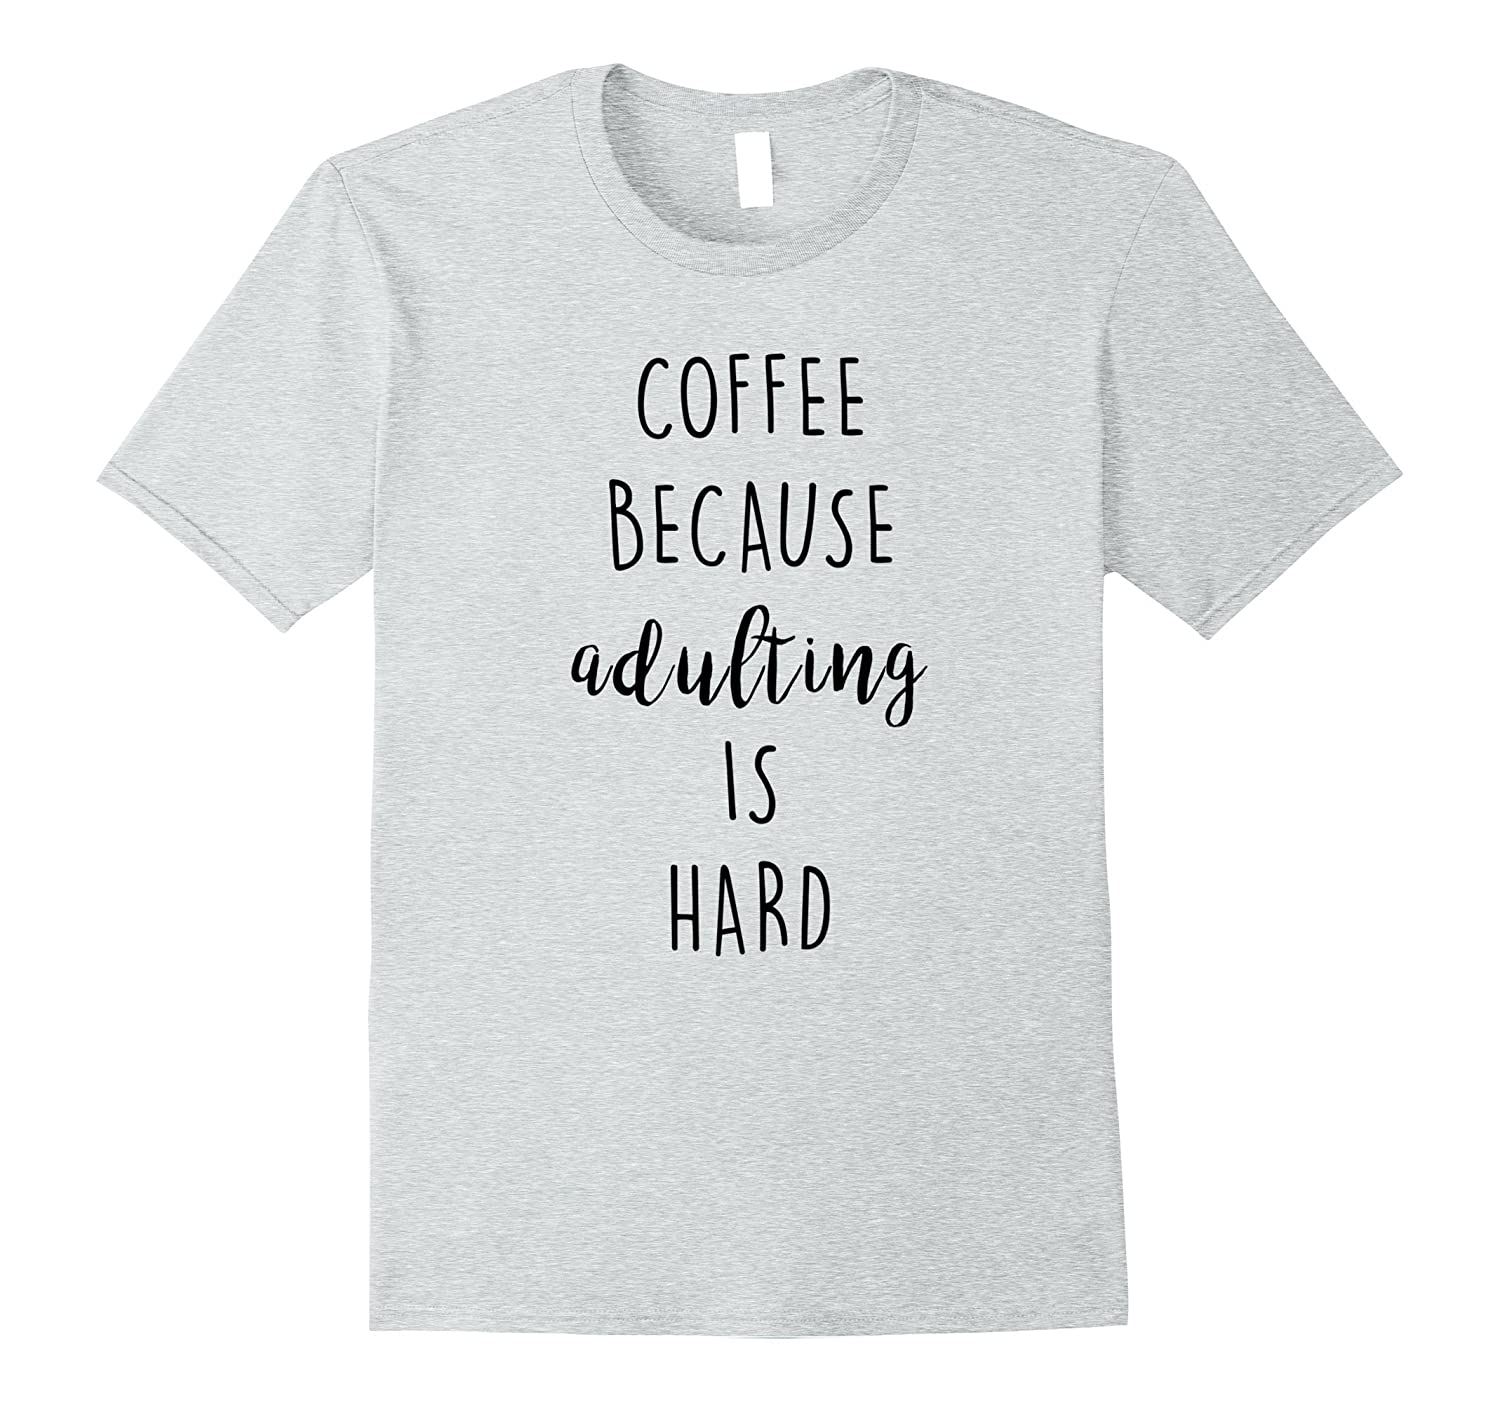 fd454479f Coffee Because Adulting Is Hard T-Shirt-PL – Polozatee